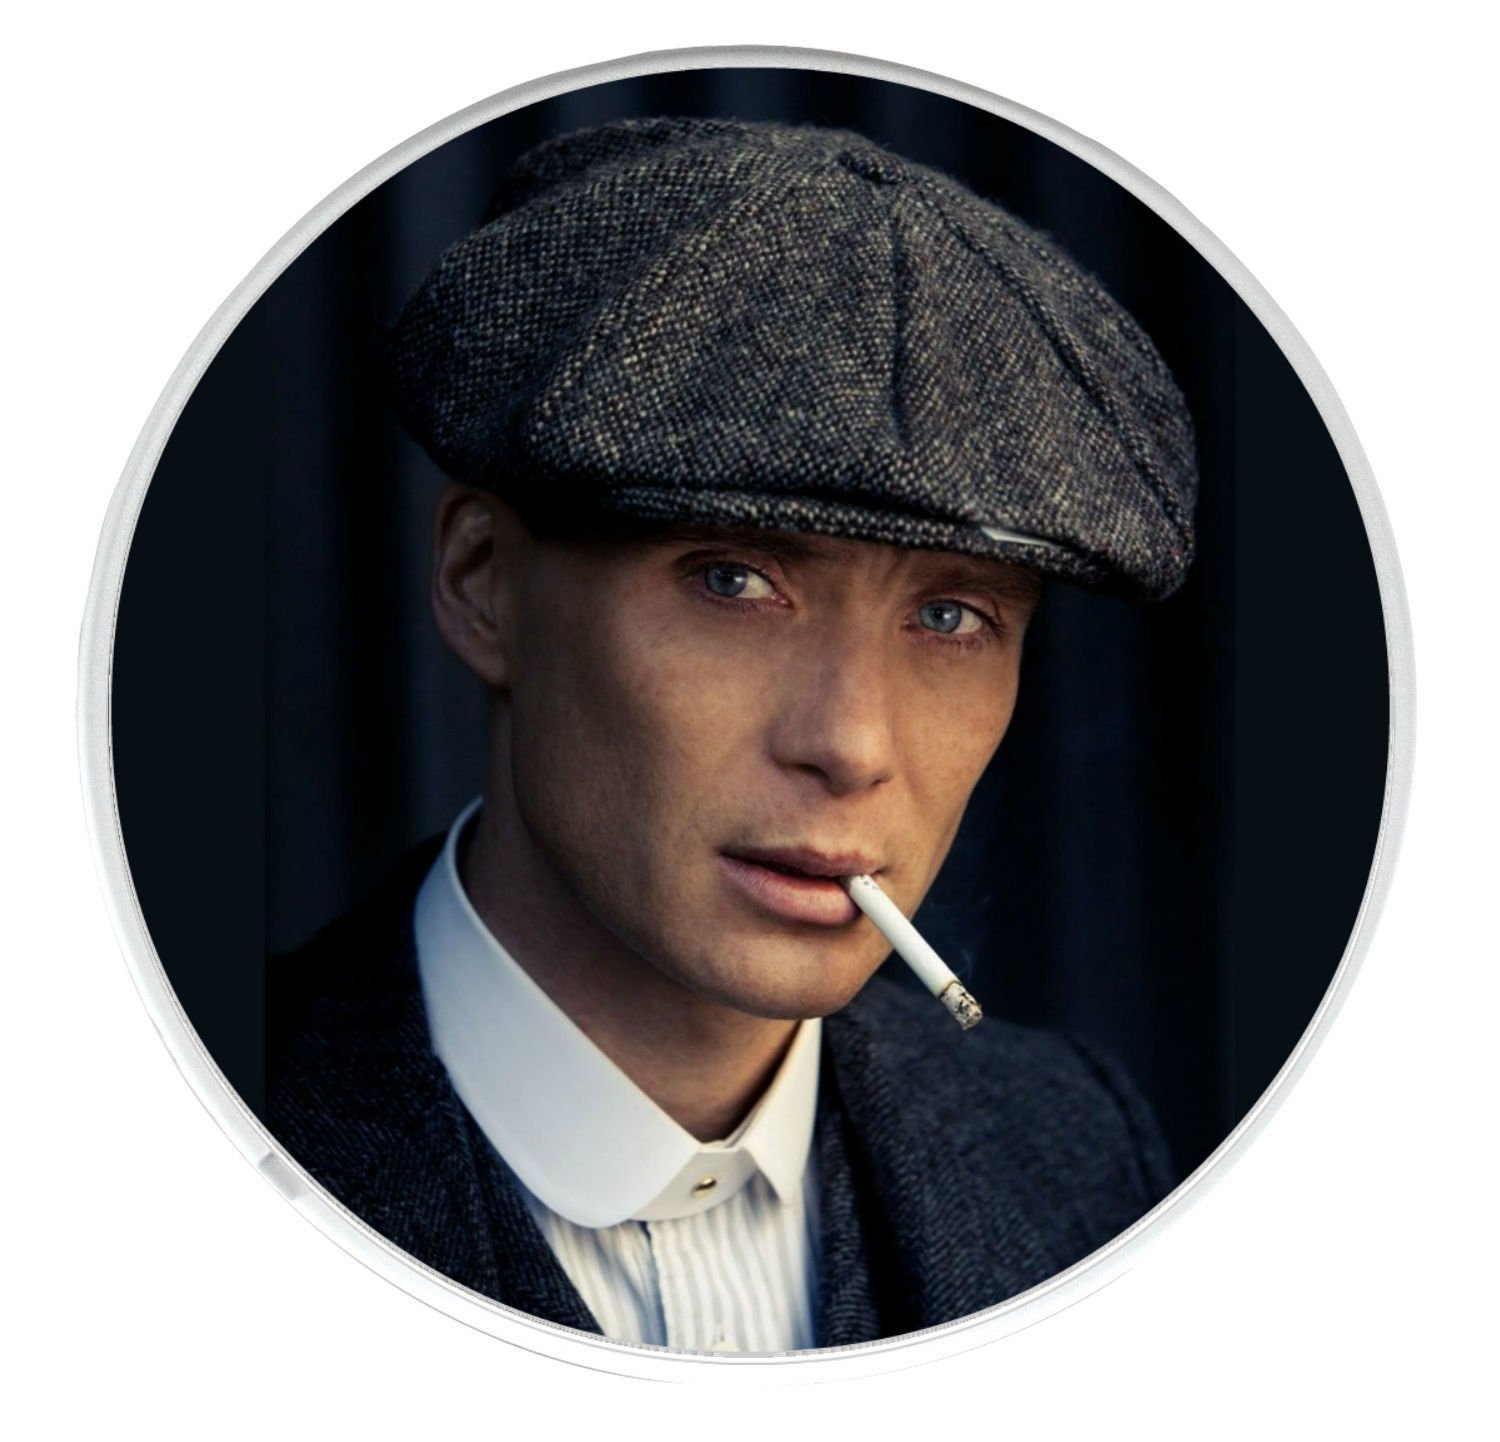 Mug Coaster with a picture of Tommy Shelby played by Cillian Murphy in the BBC series Peaky Blinders. Unique Round Drinks